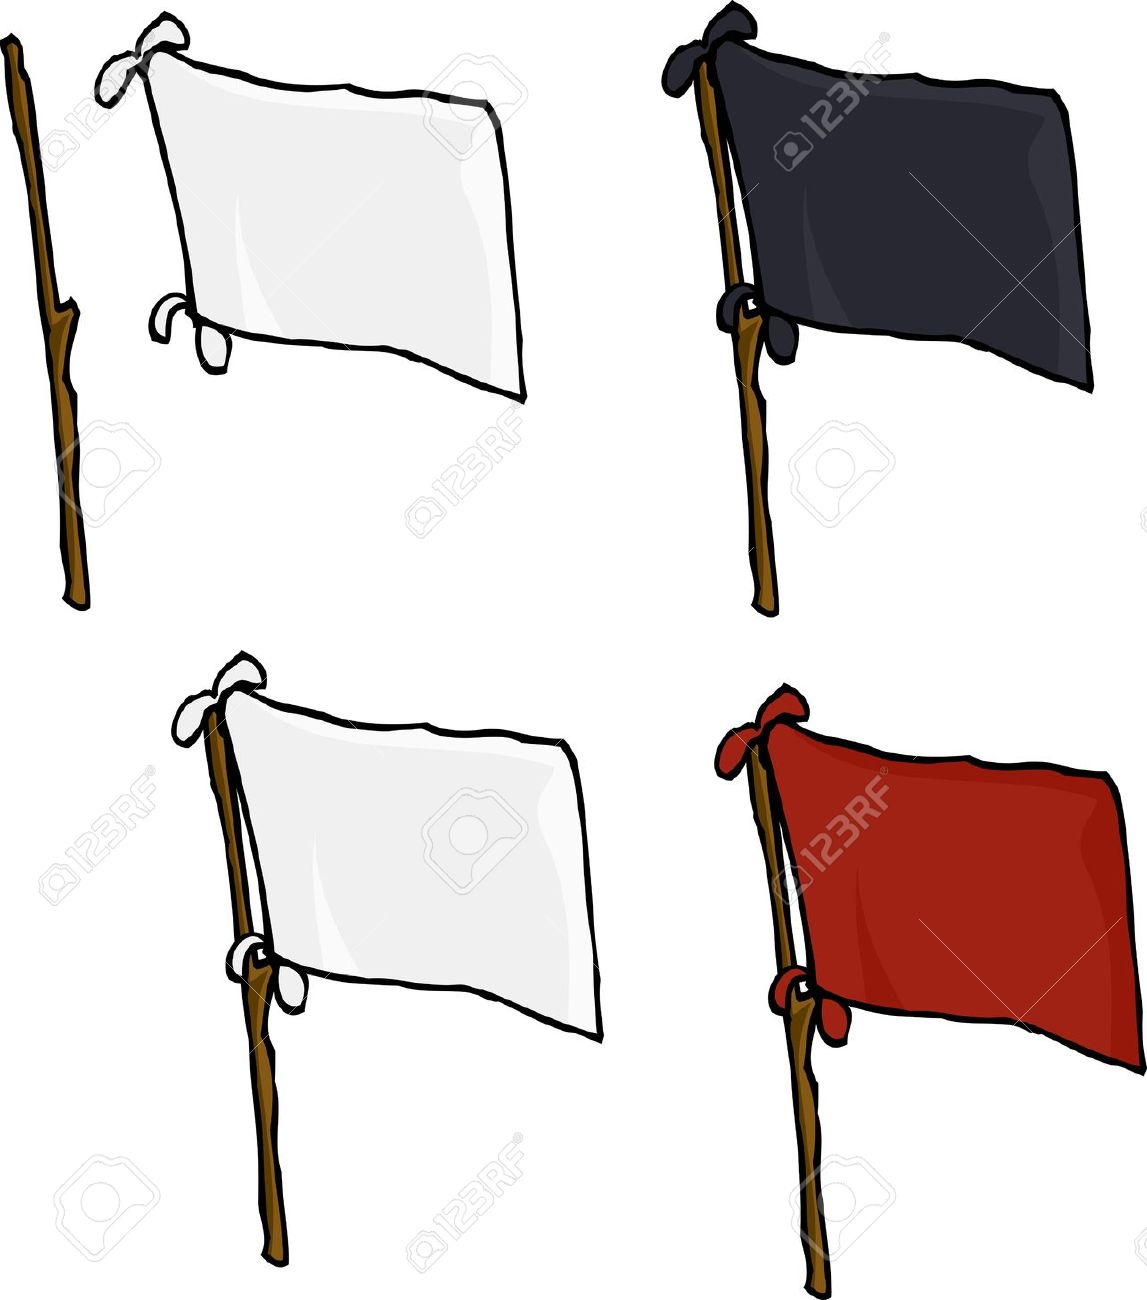 Blank Flags Made From Sheets On Stick Over White Background.